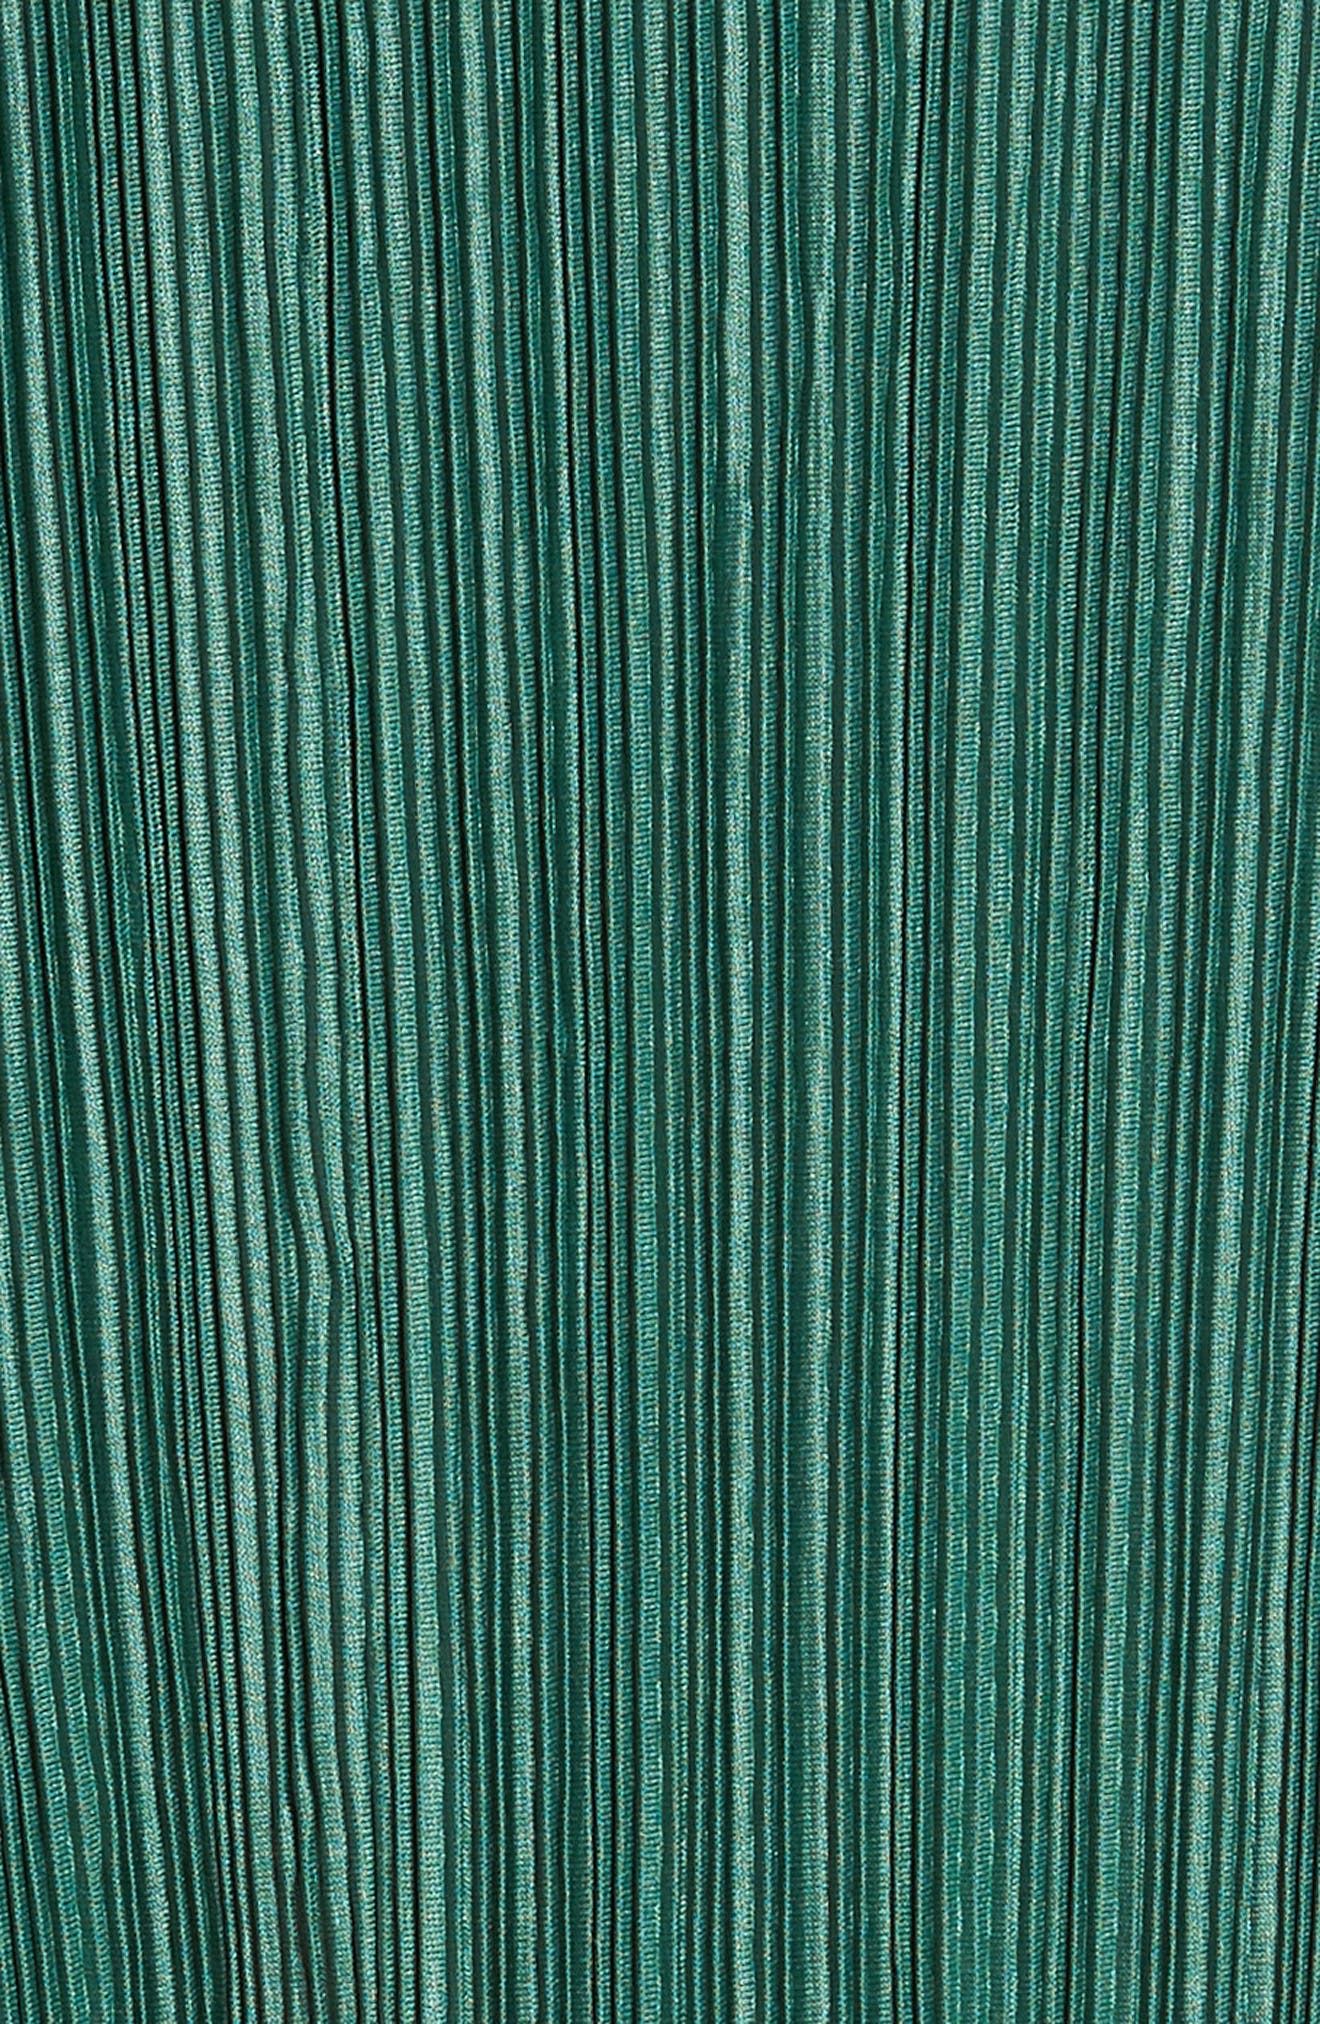 Micropleat Top,                             Alternate thumbnail 6, color,                             Dark Green